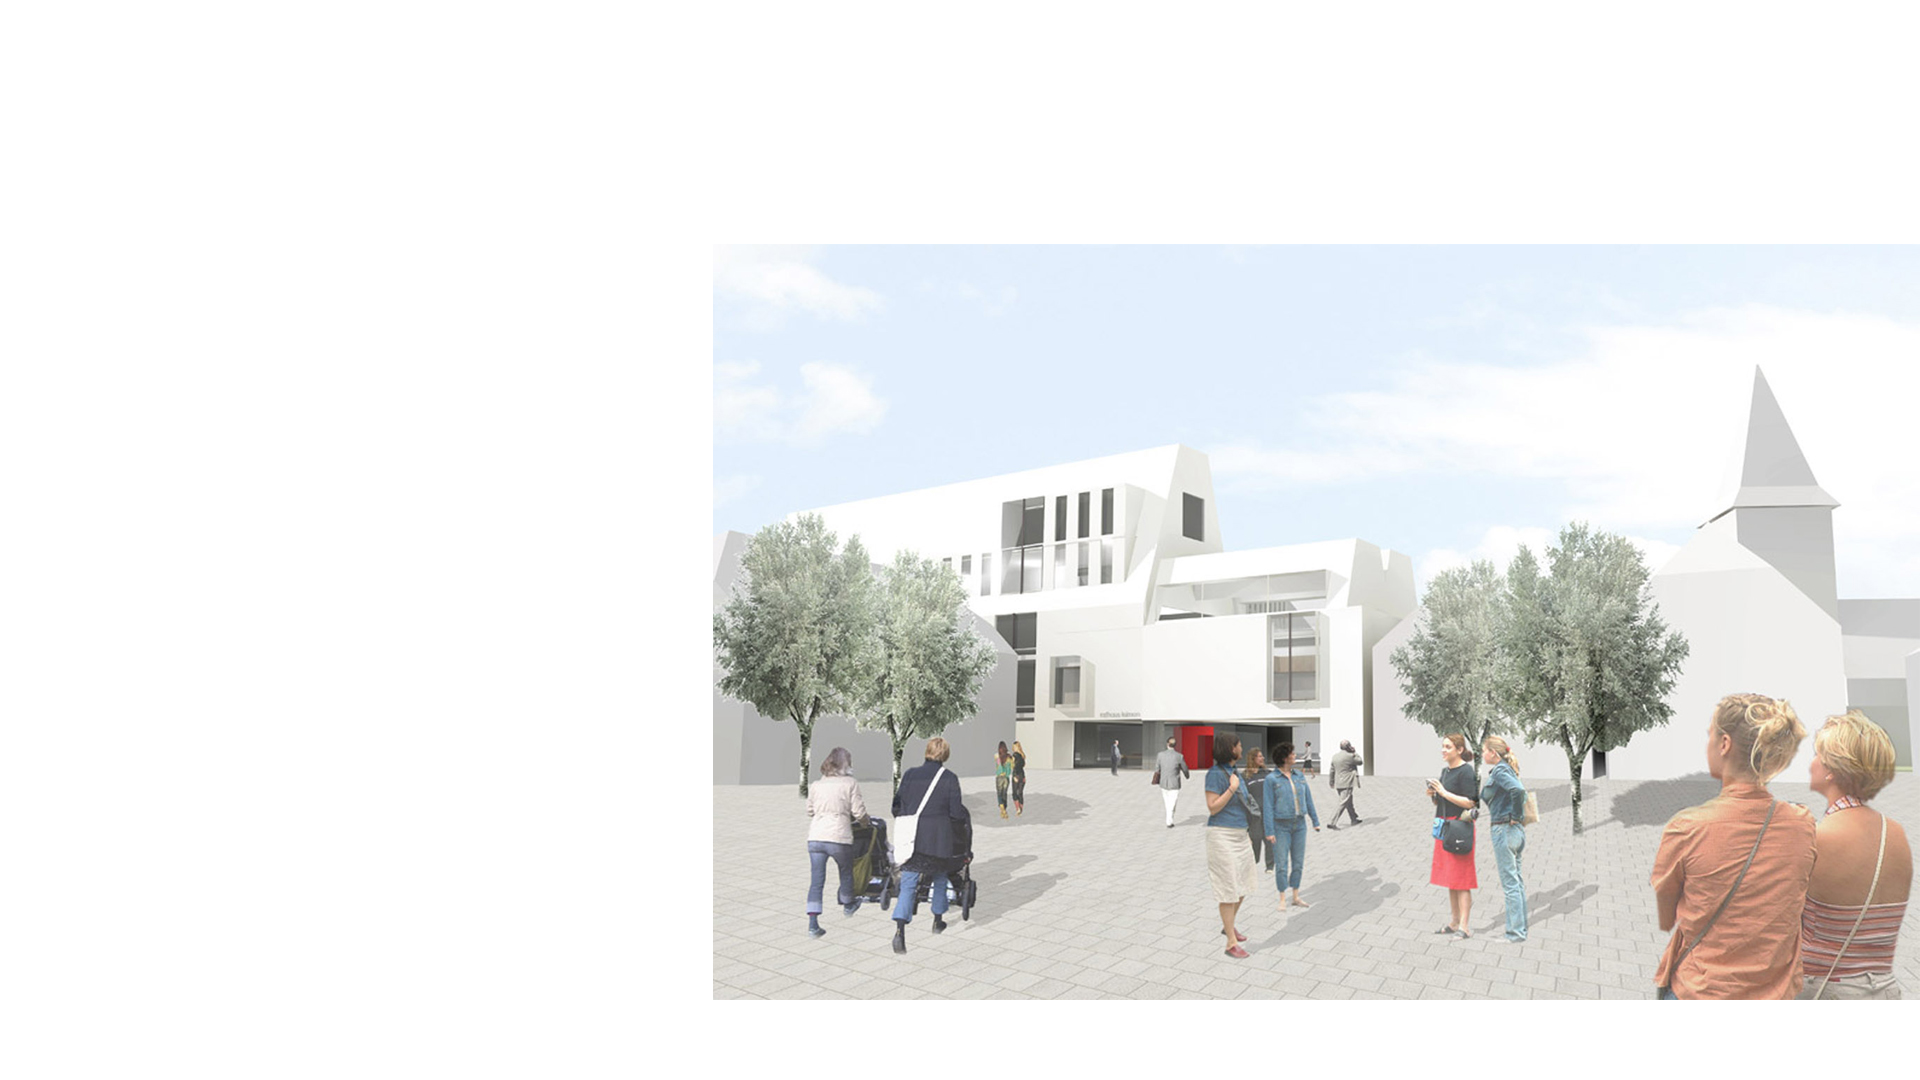 3D composite rendering of the Neubau Rathaus Stadt Leimen Germany